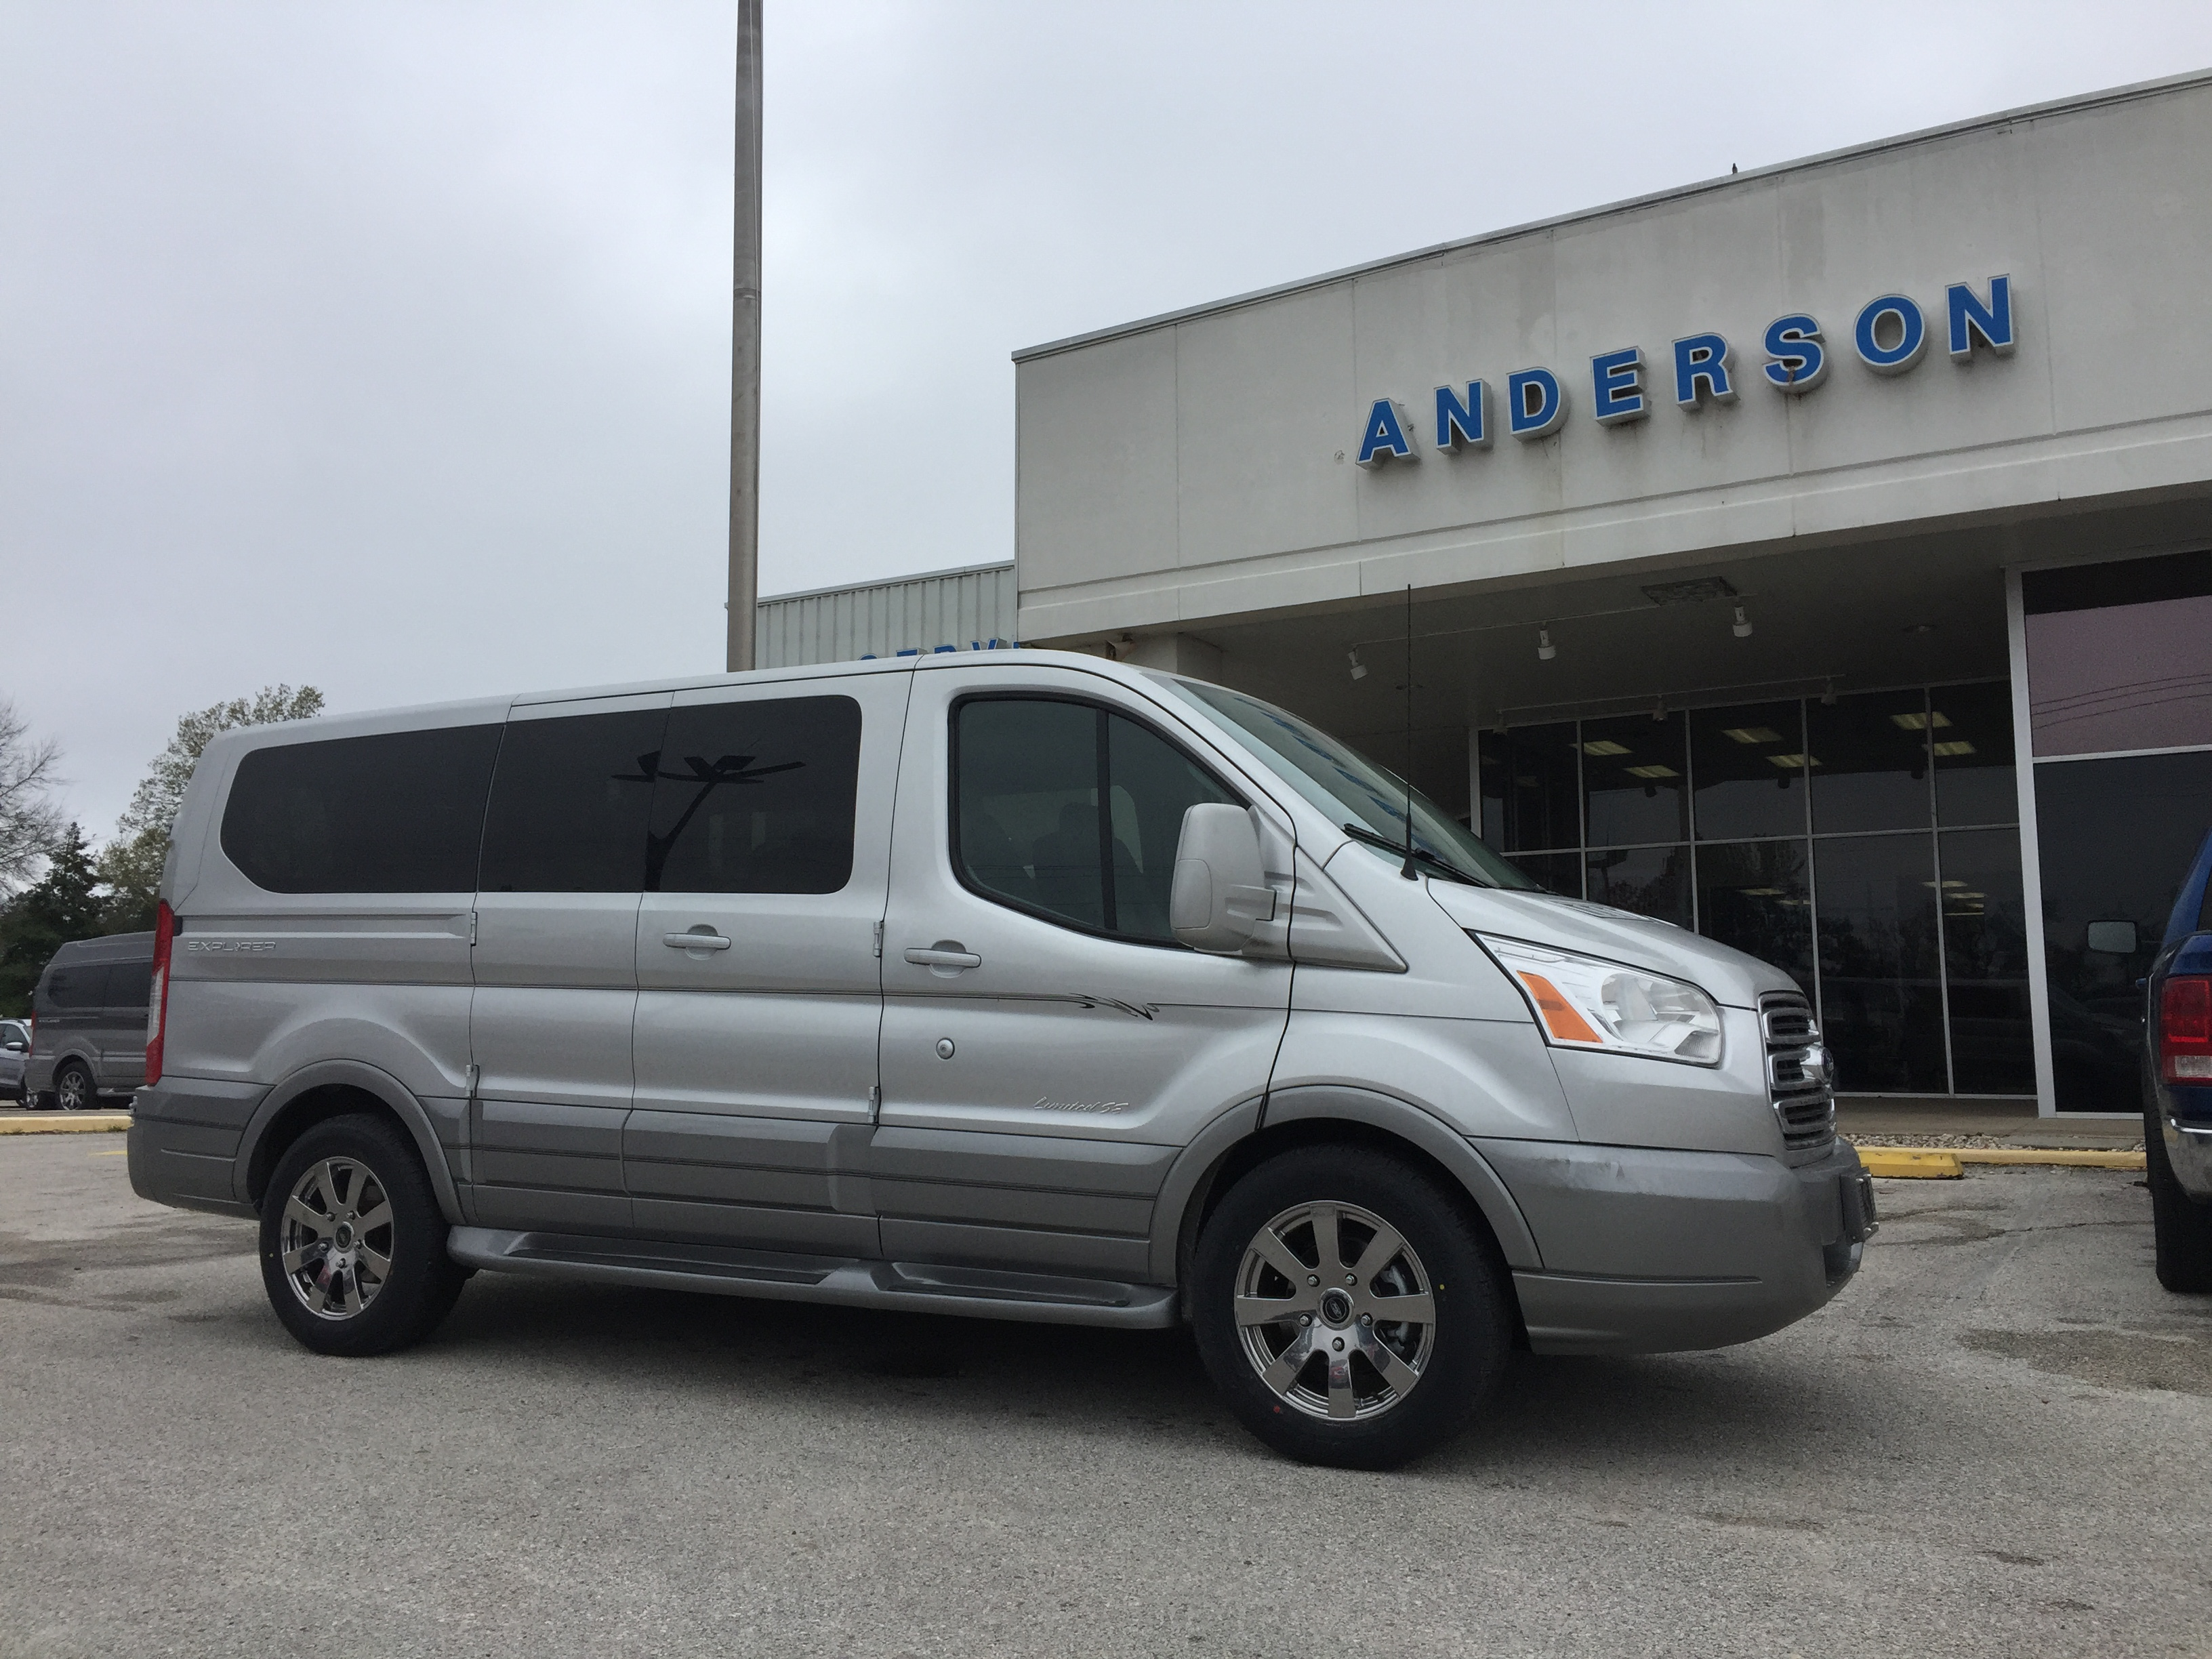 camera img charcoal aid park transmission windows select van power defogger fleet passenger automatic window view speed interior ford cloth transit reverse rear shift